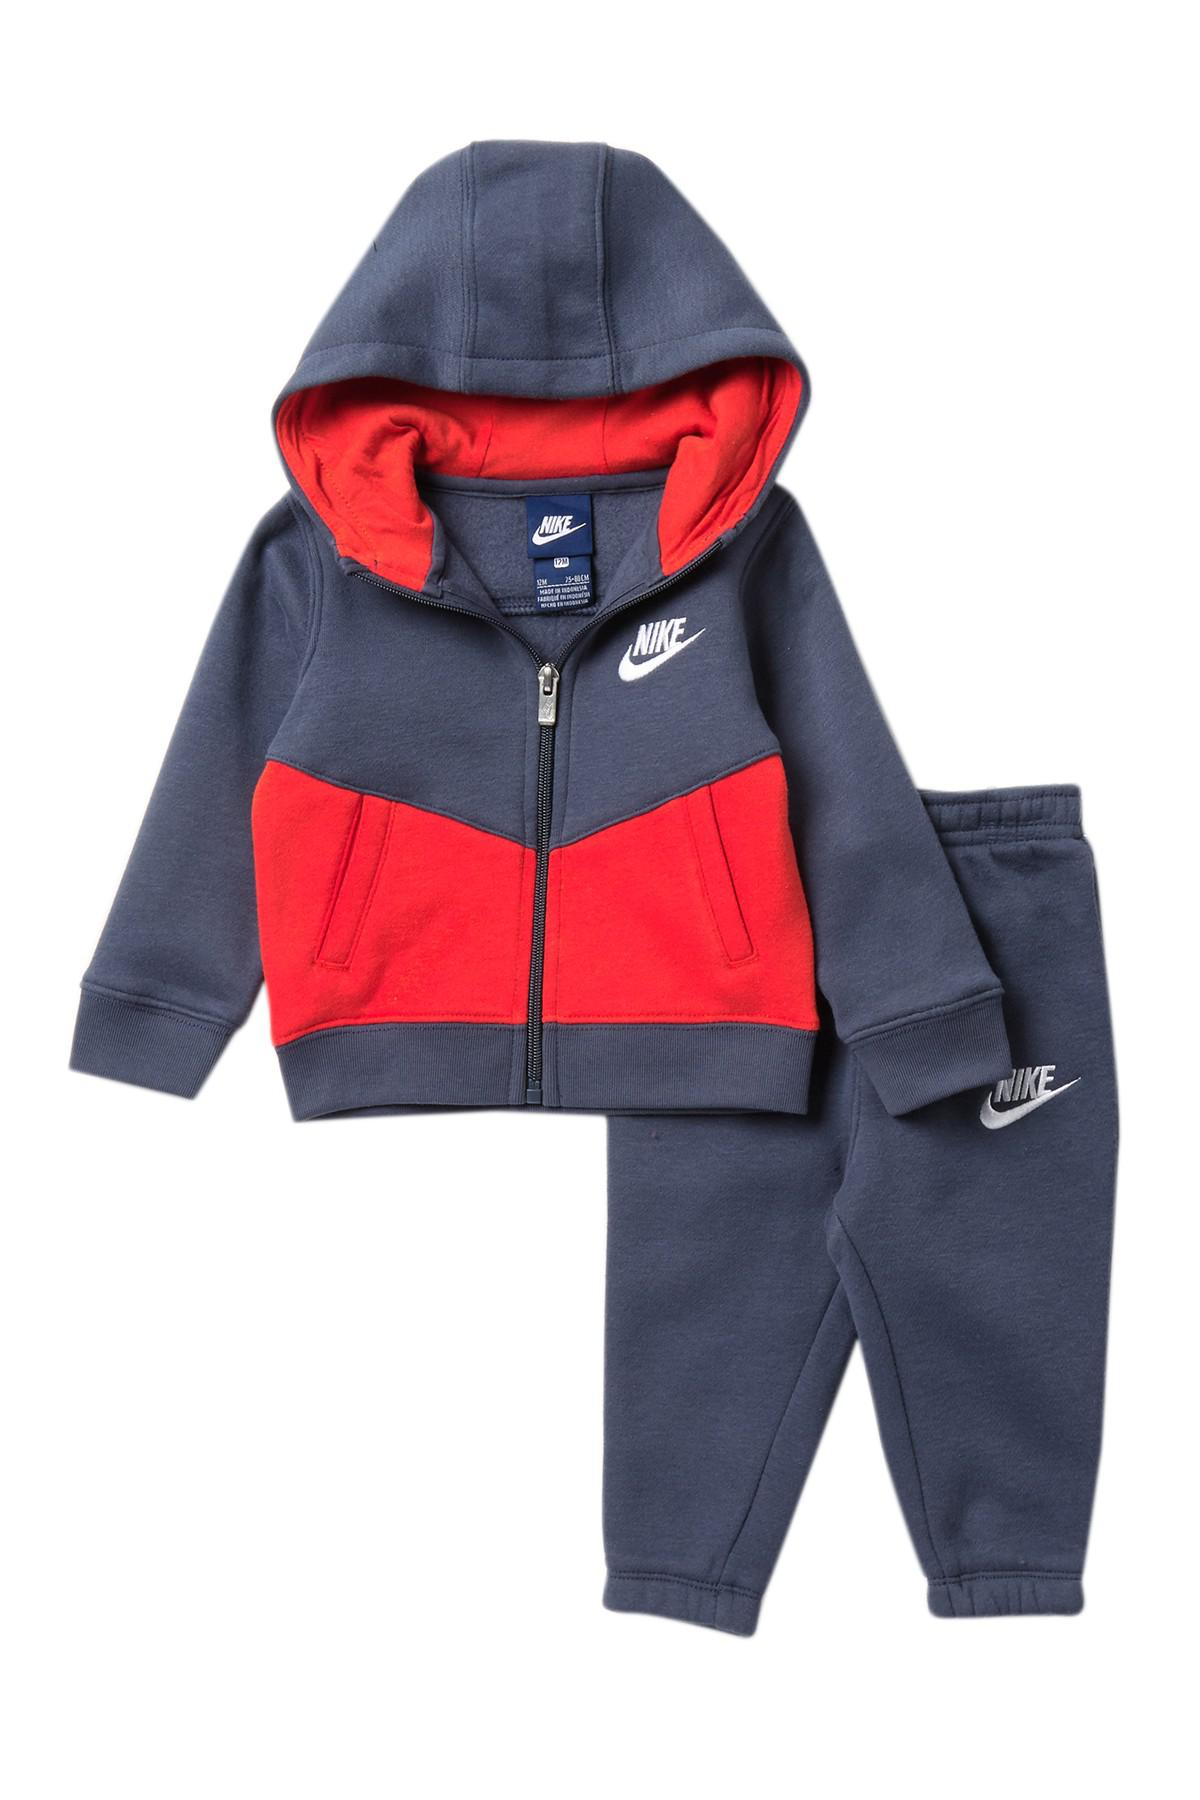 Lyst - Nike Track Suit (baby Boys) in Red for Men 390d1fabc